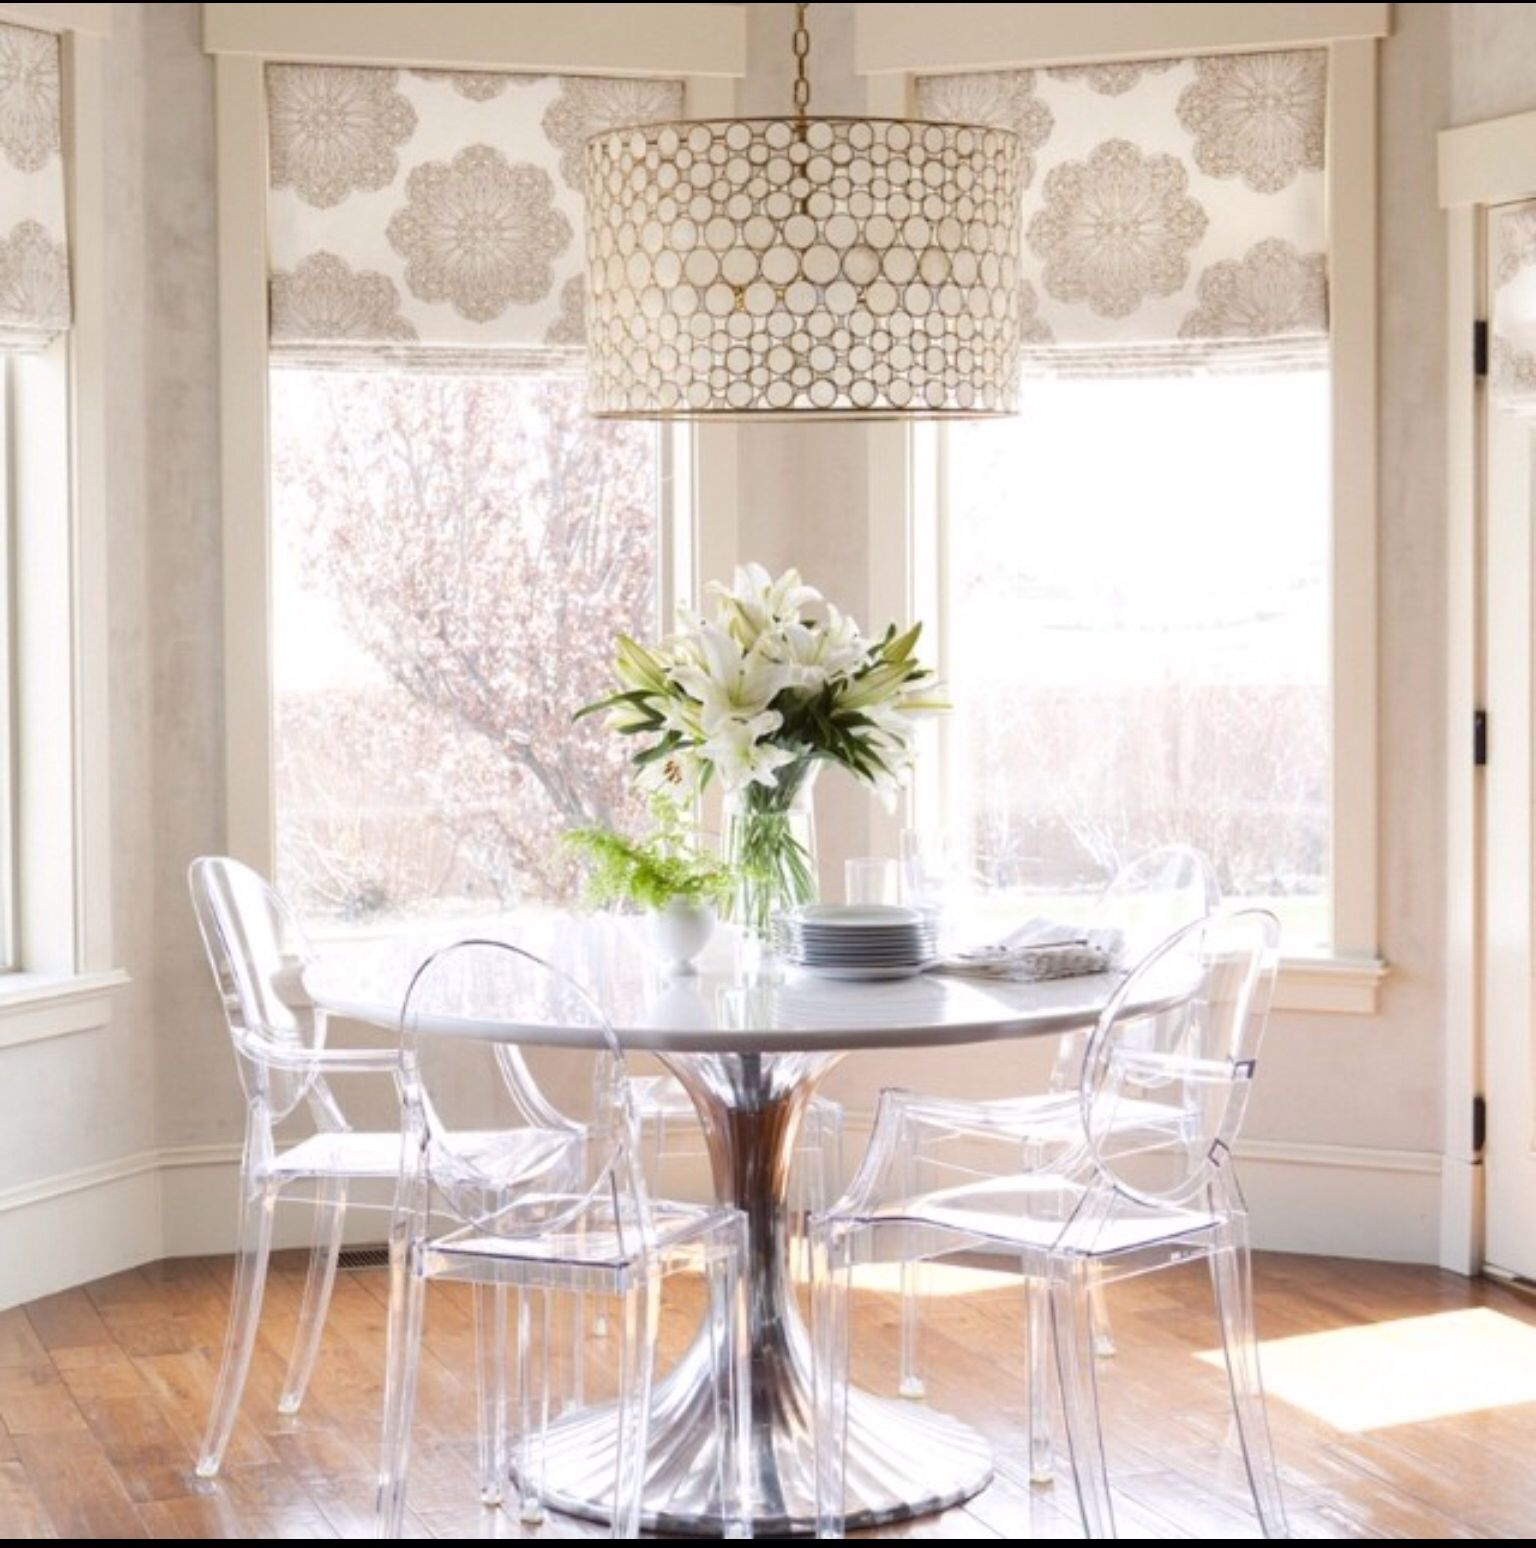 ... Living Room Valance Shade Curtains. Drum Chandelier, Drum Pendant,  Dining Table Chandelier, Ceiling Pendant, Circular Chandelier,